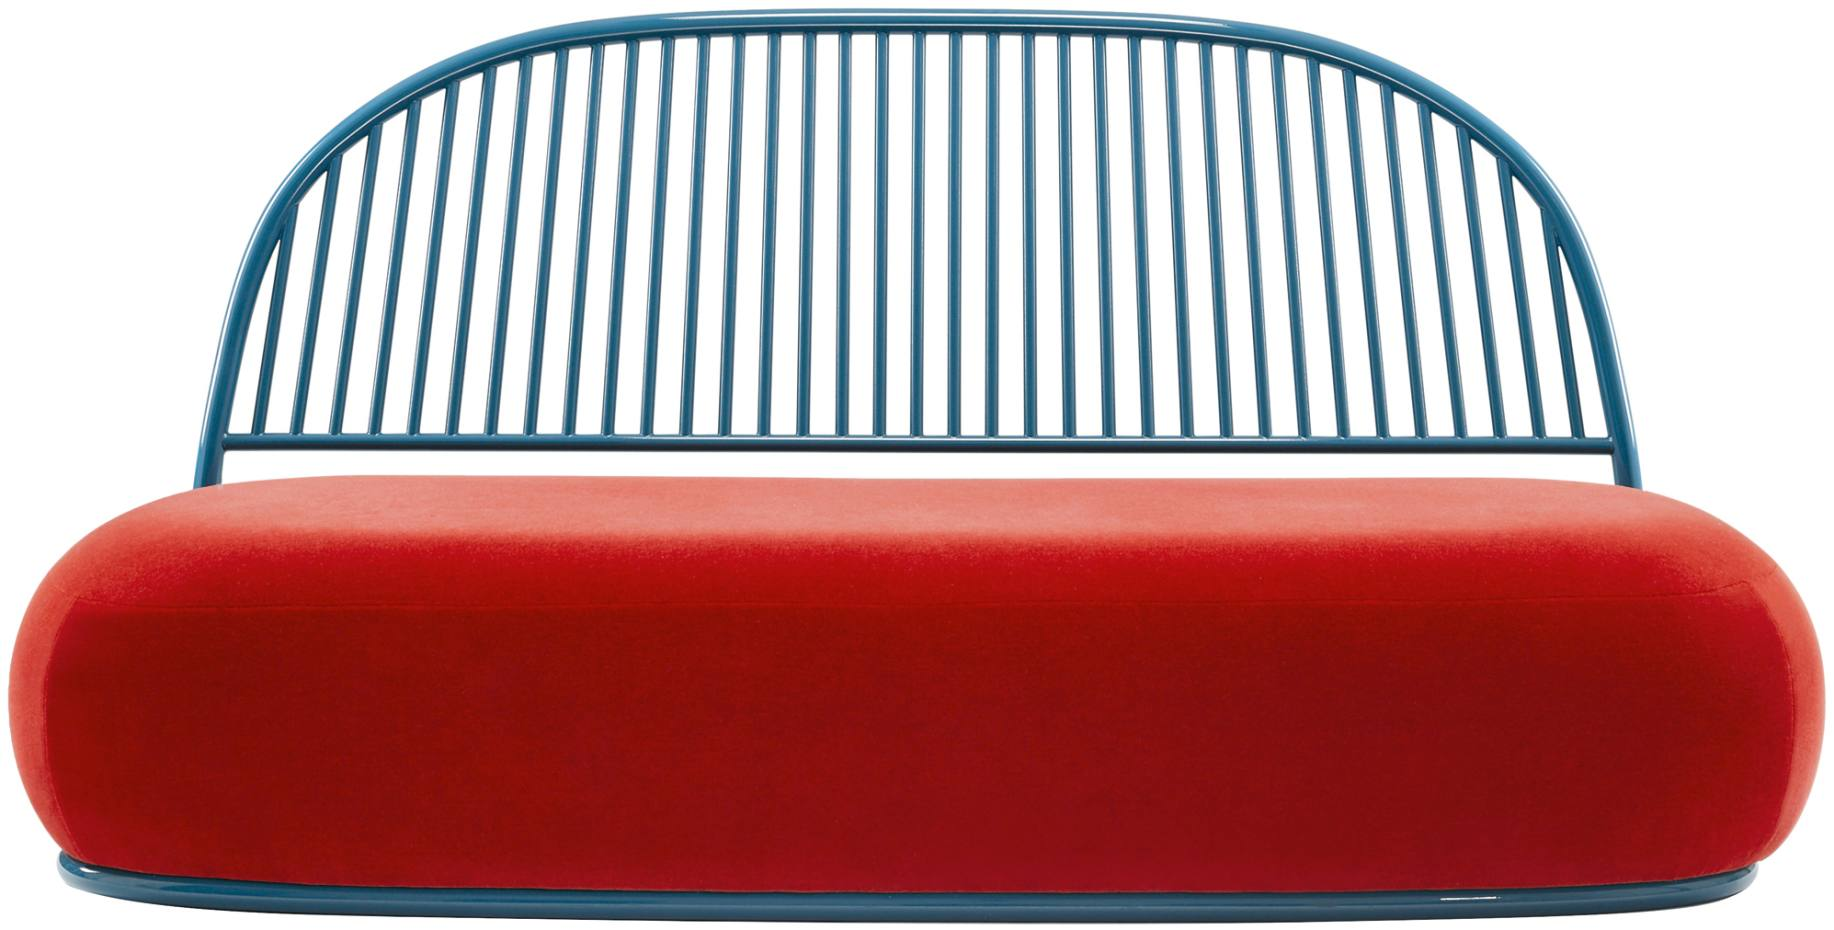 Sélacquered-steel and upholstery Circe sofa by Ini Archibong, from £9,430